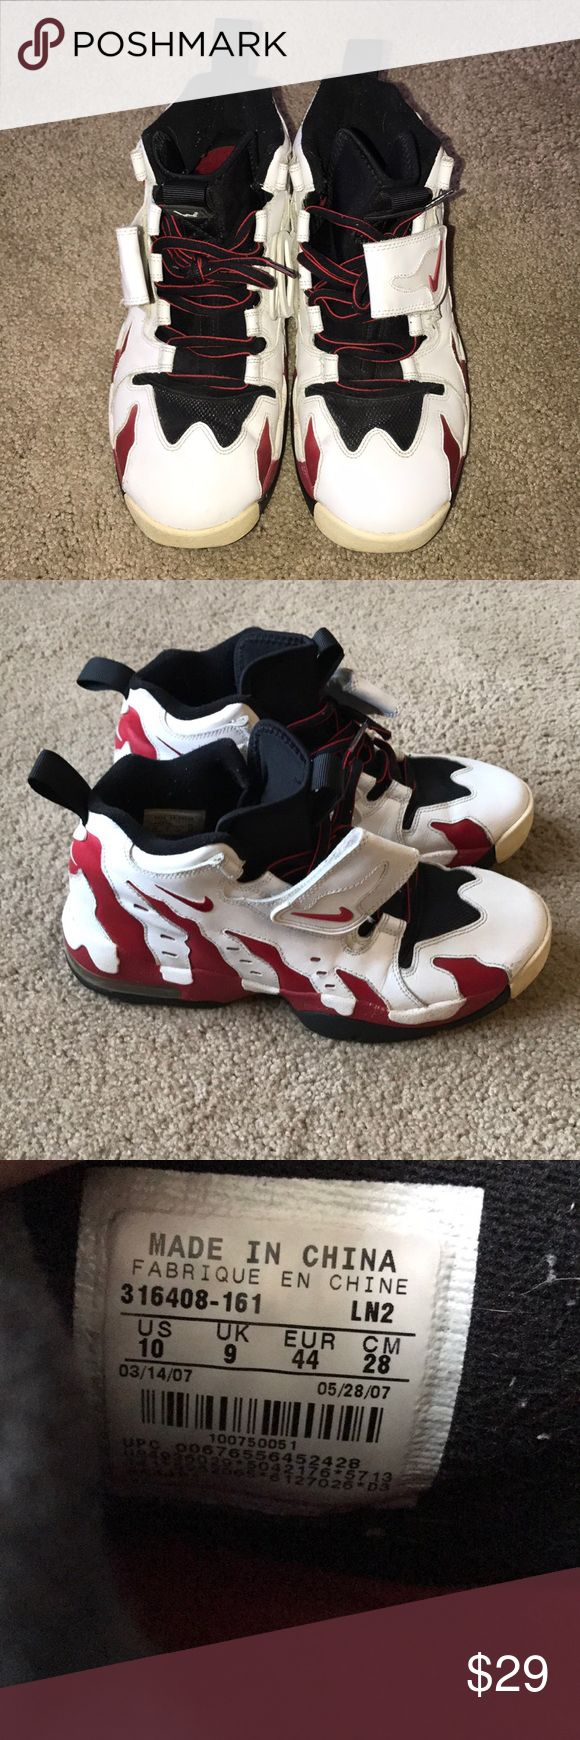 Deion turf shoes sz 10 OG colorway. Worn a ton of times, solid 7/10 condition. Some slight cracking on side and couple scratches as well. No box Nike Shoes Athletic Shoes